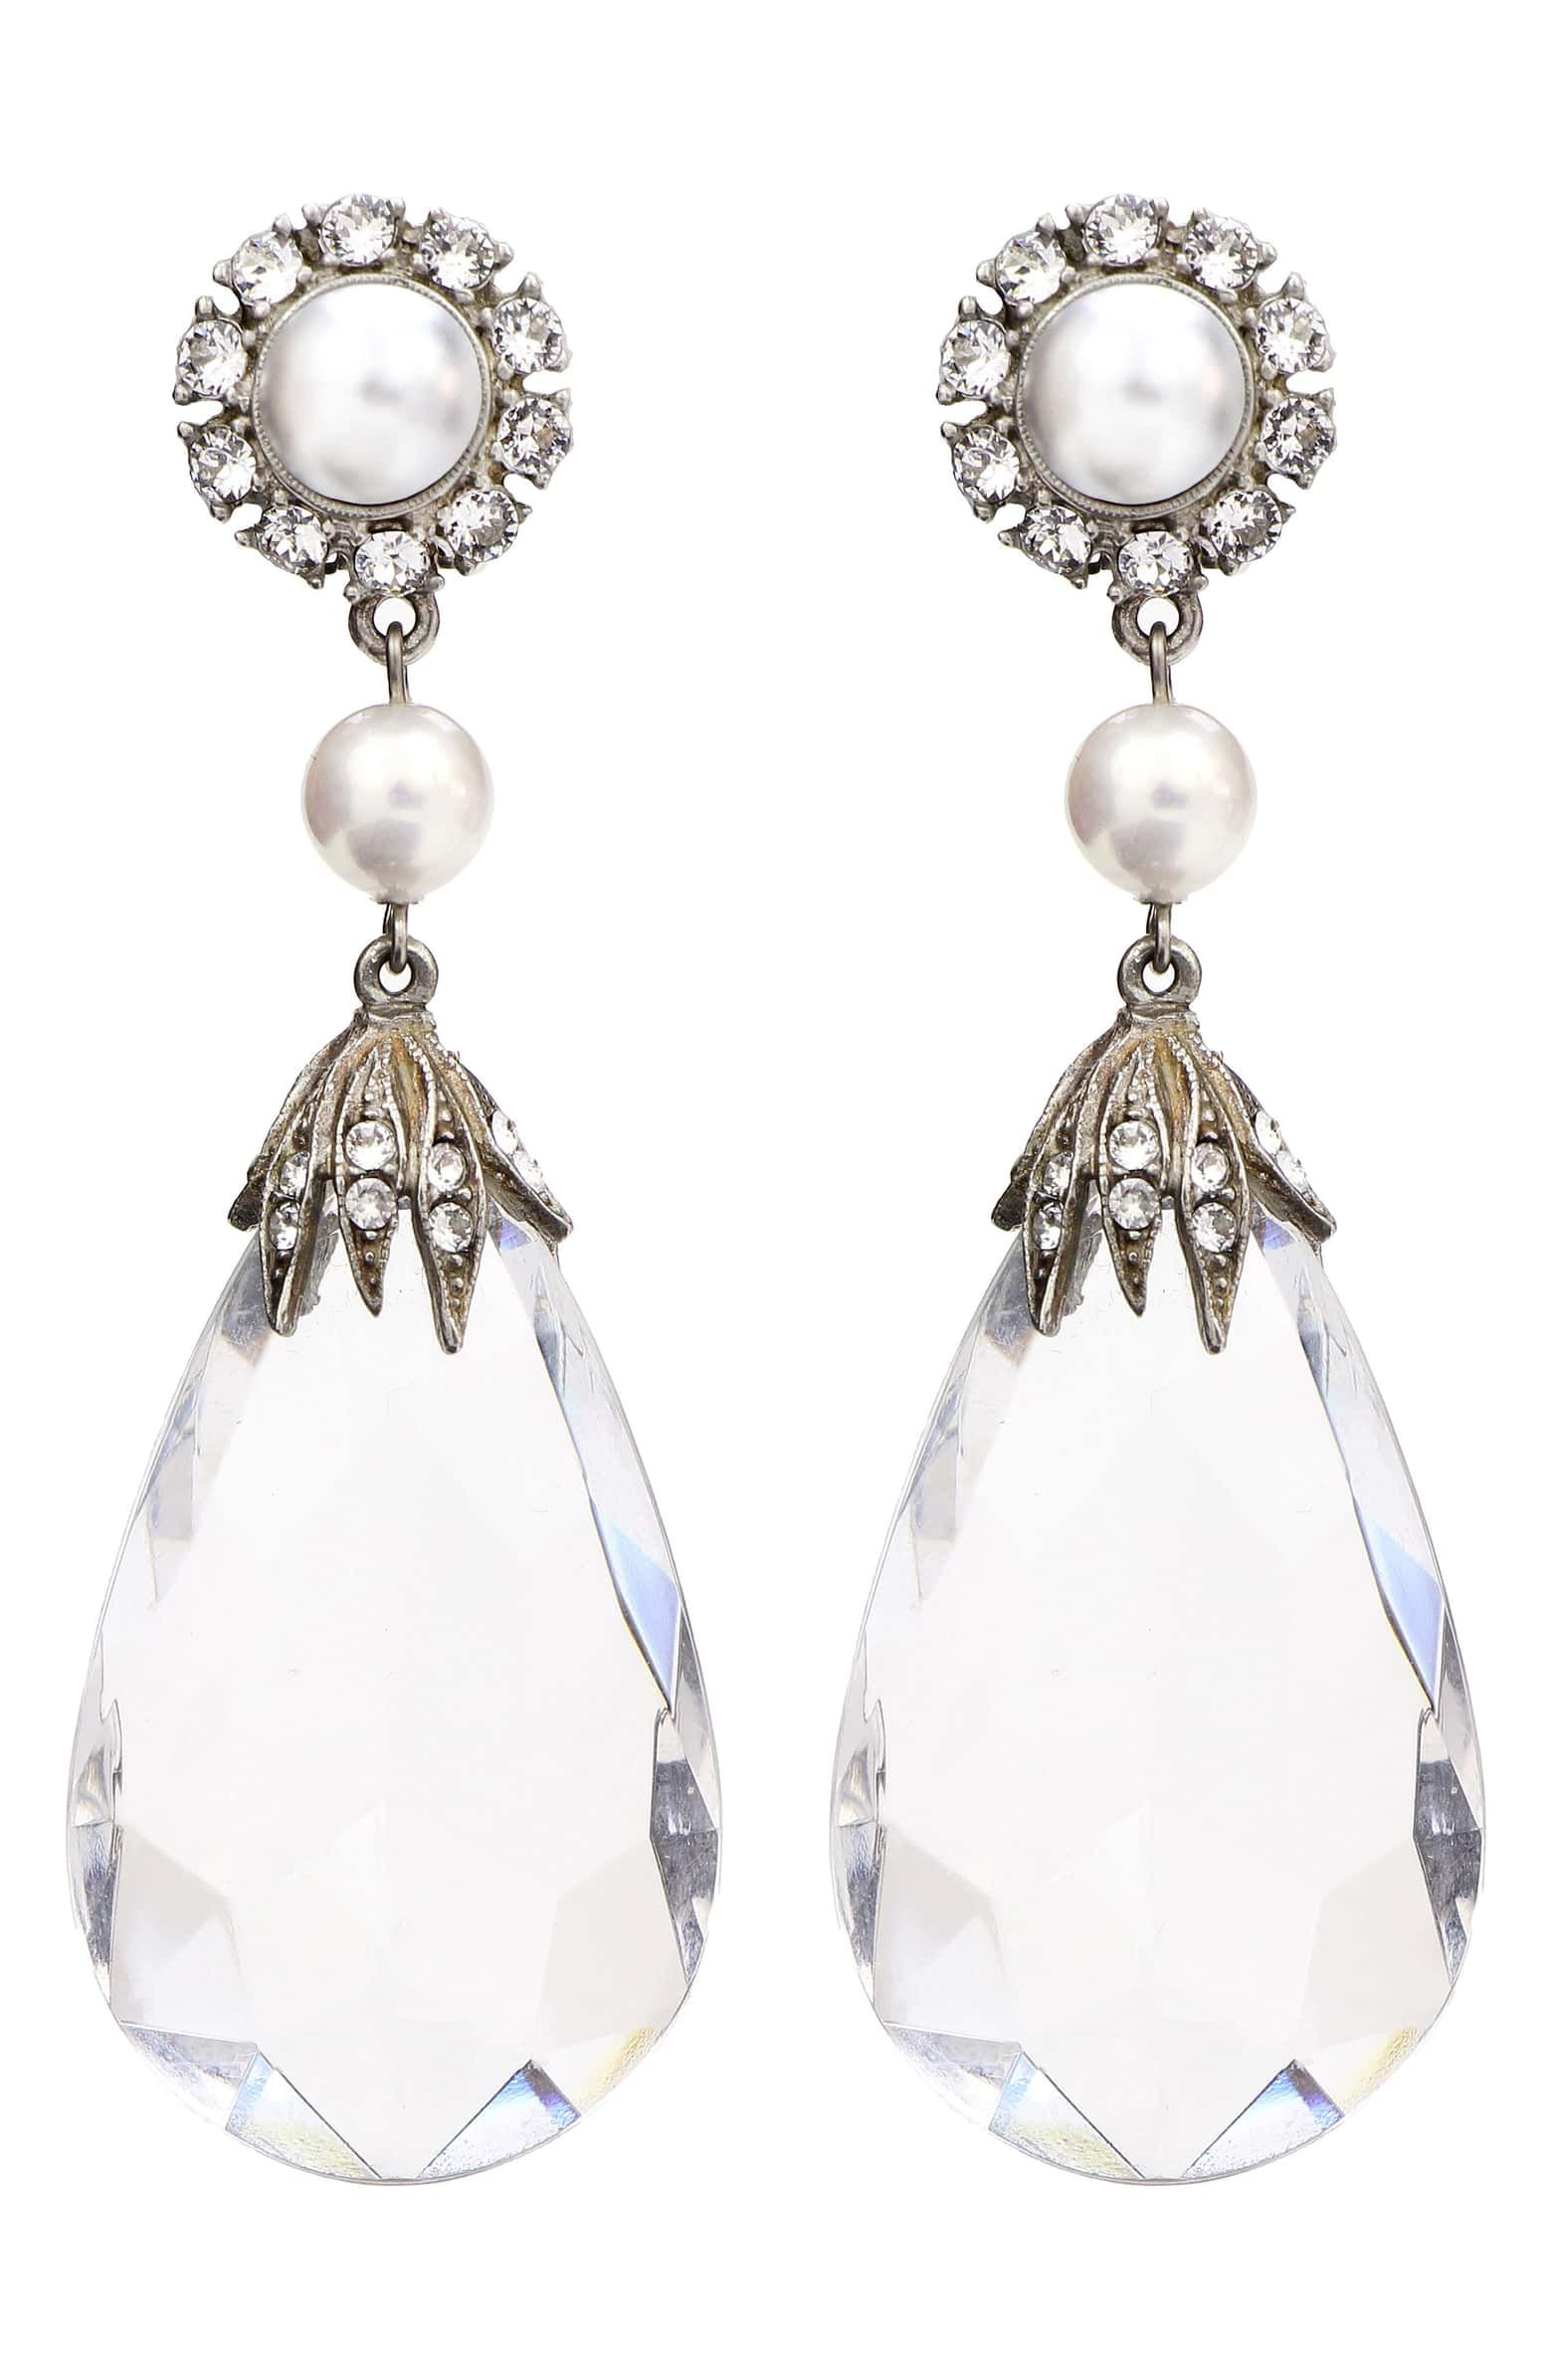 Imitation Pearl Crystal Clip Earrings Main Color Clear Silver